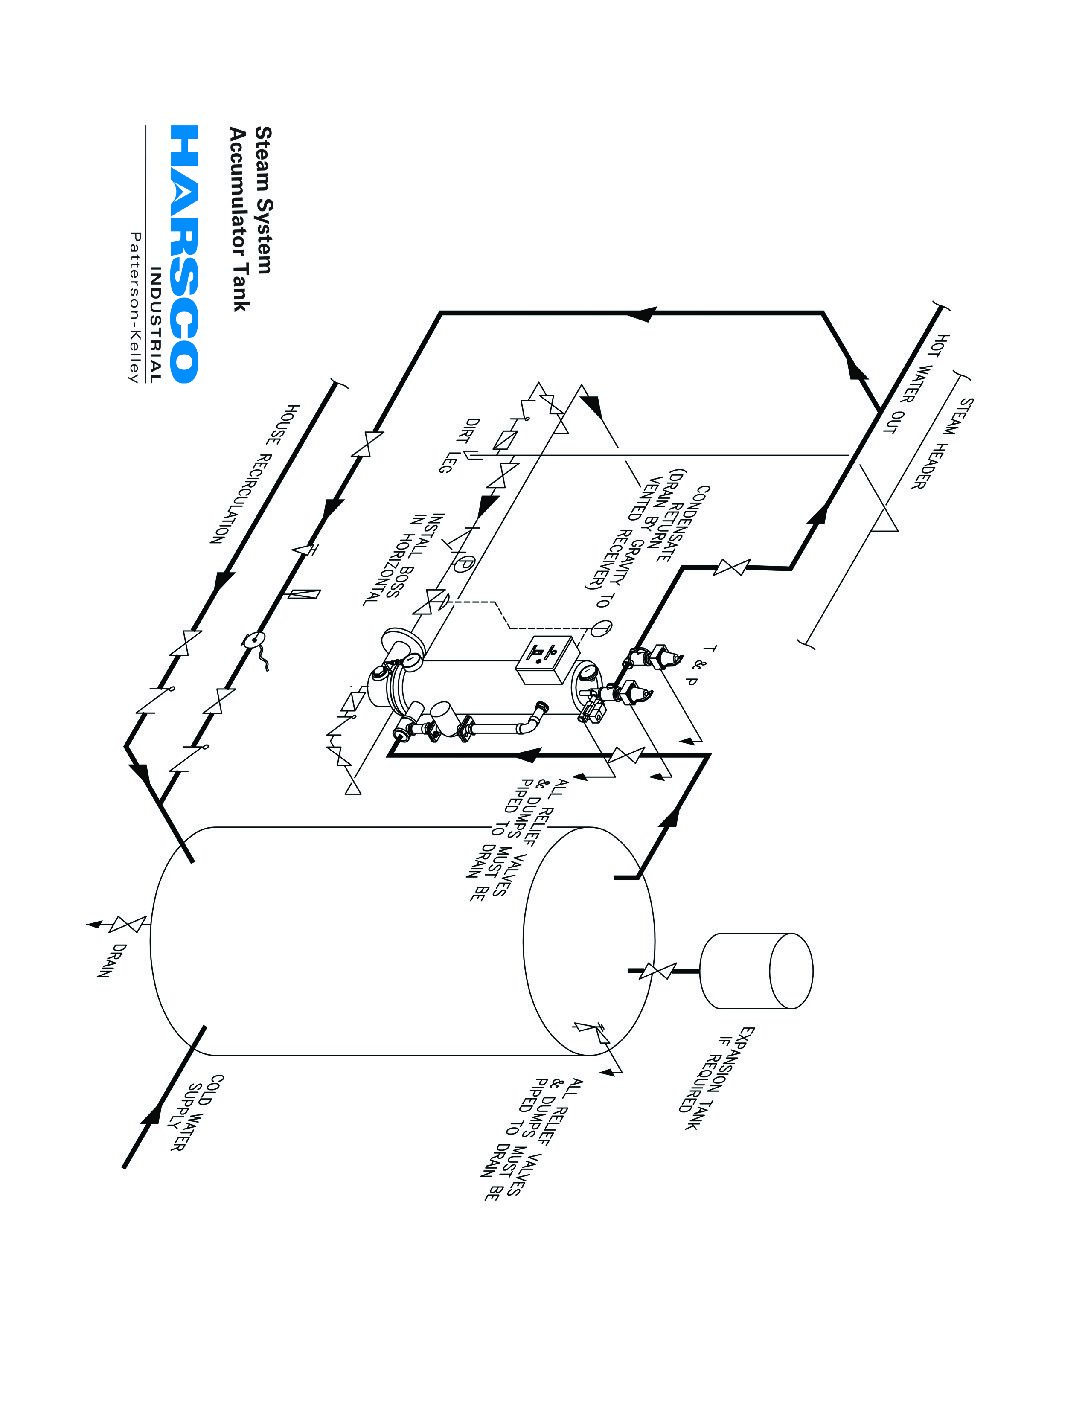 aculator tank schematic - auto electrical wiring diagram on ford 4500  backhoe wiring diagram,